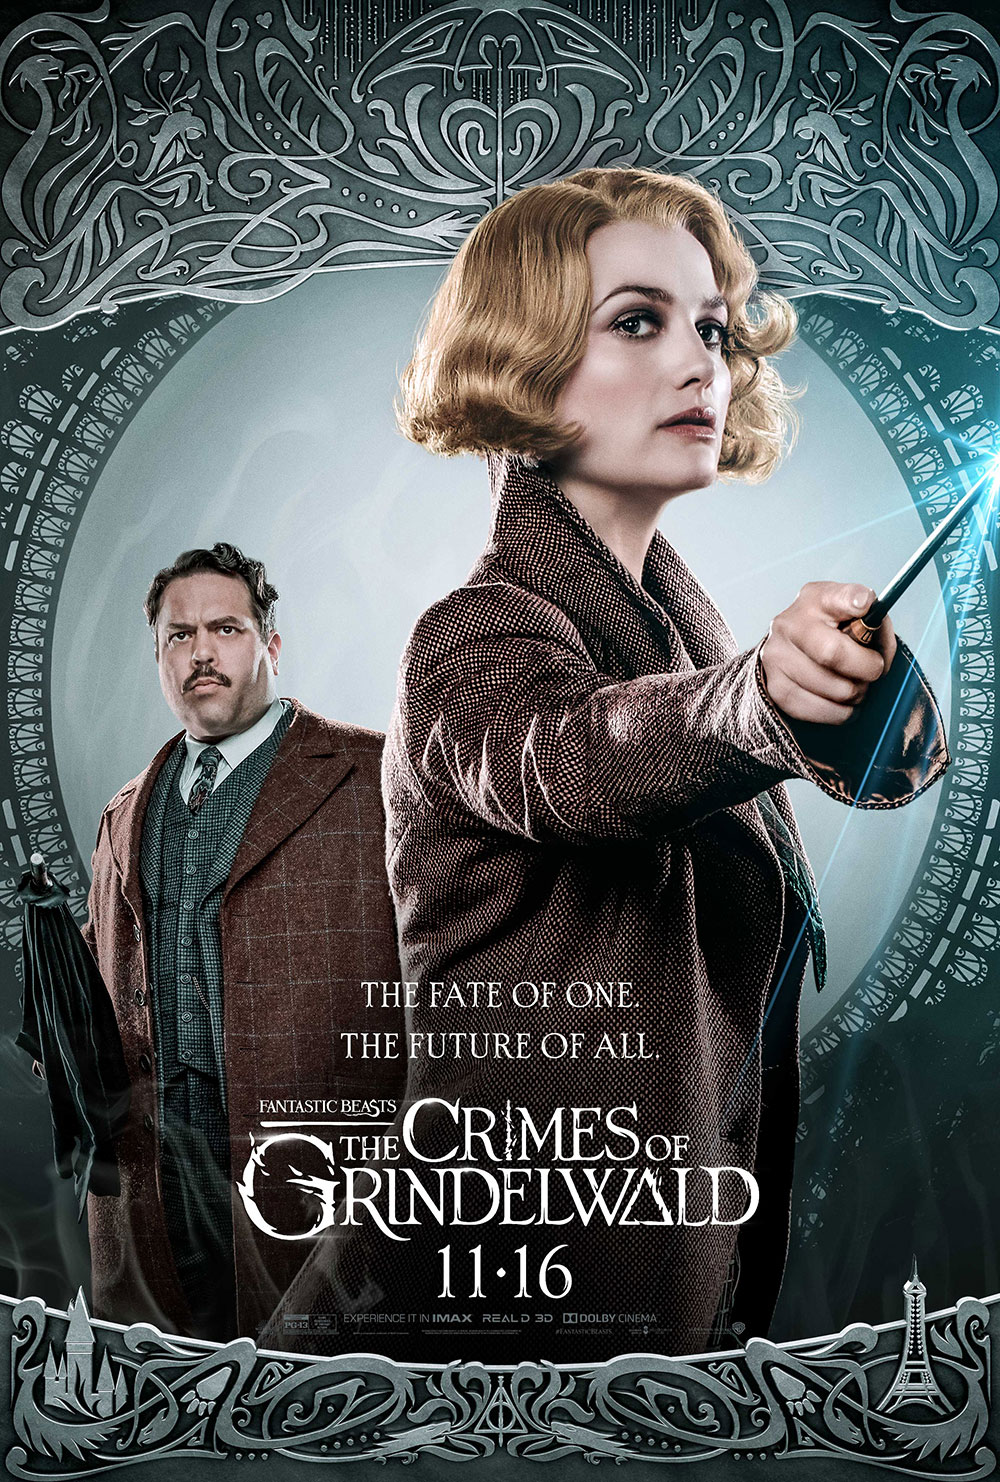 """Fantastic Beasts: The Crimes of Grindelwald"": Queenie and Jacob character poster"